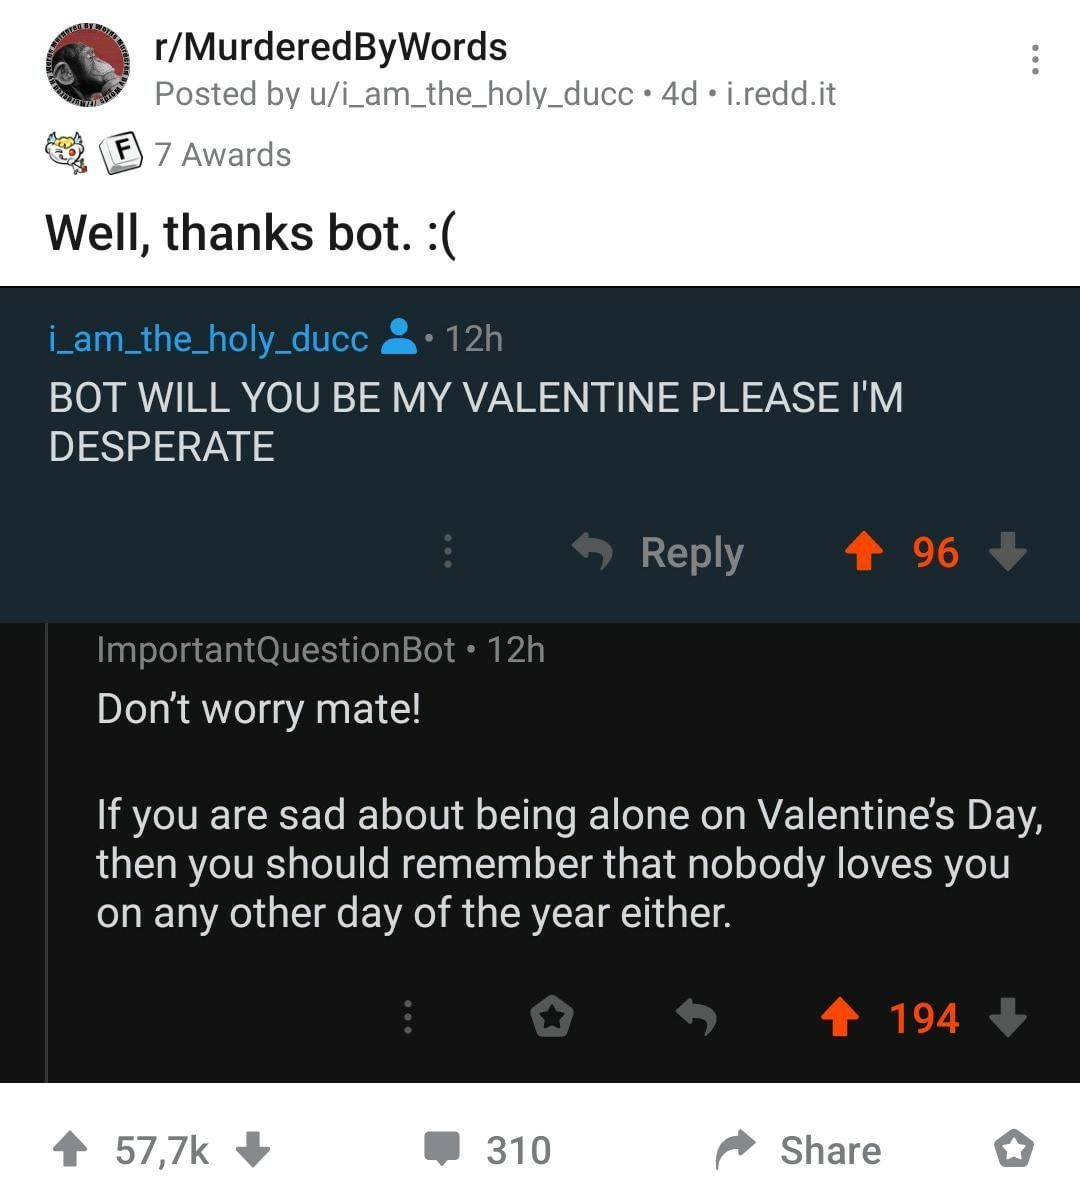 Follow Craventv And Craventvonyt For More Visit Us On Youtube For 10 Min Of Reddit Top Posts Read To Funny Comments How Are You Feeling Be My Valentine